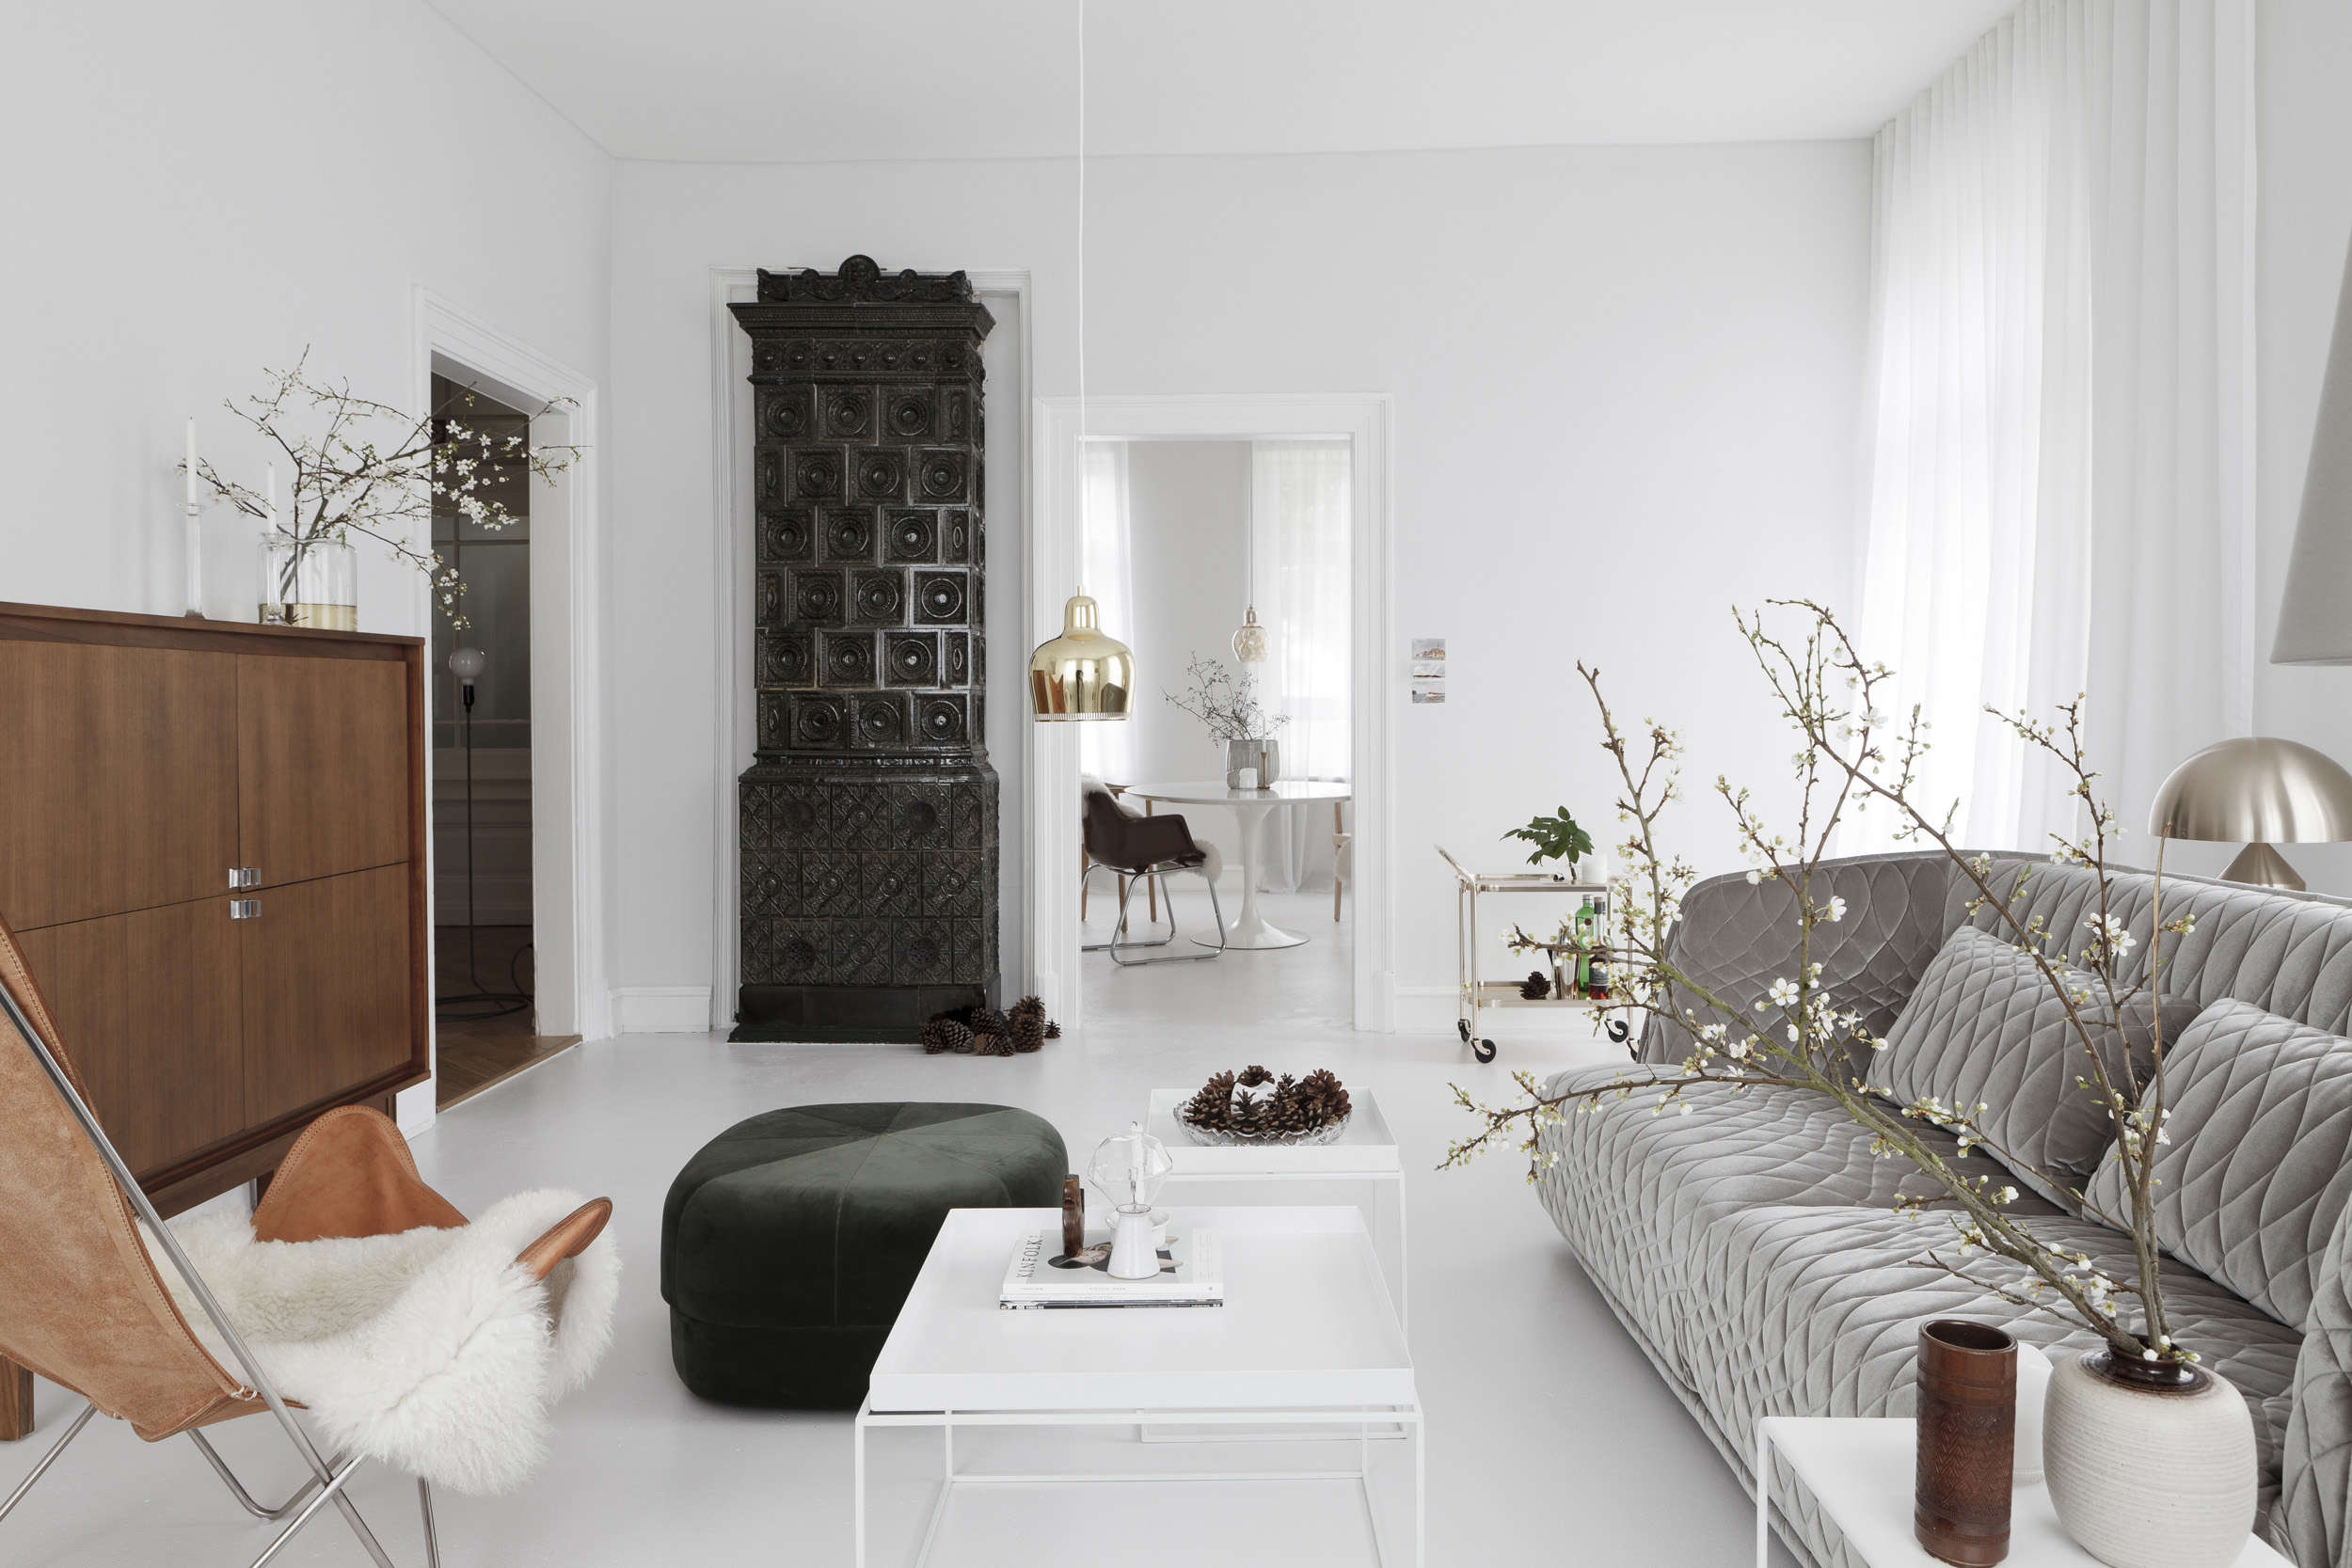 Appartement Interieur Luxe Earthly And Ethereal An Apartment Makeover By Studio Oink